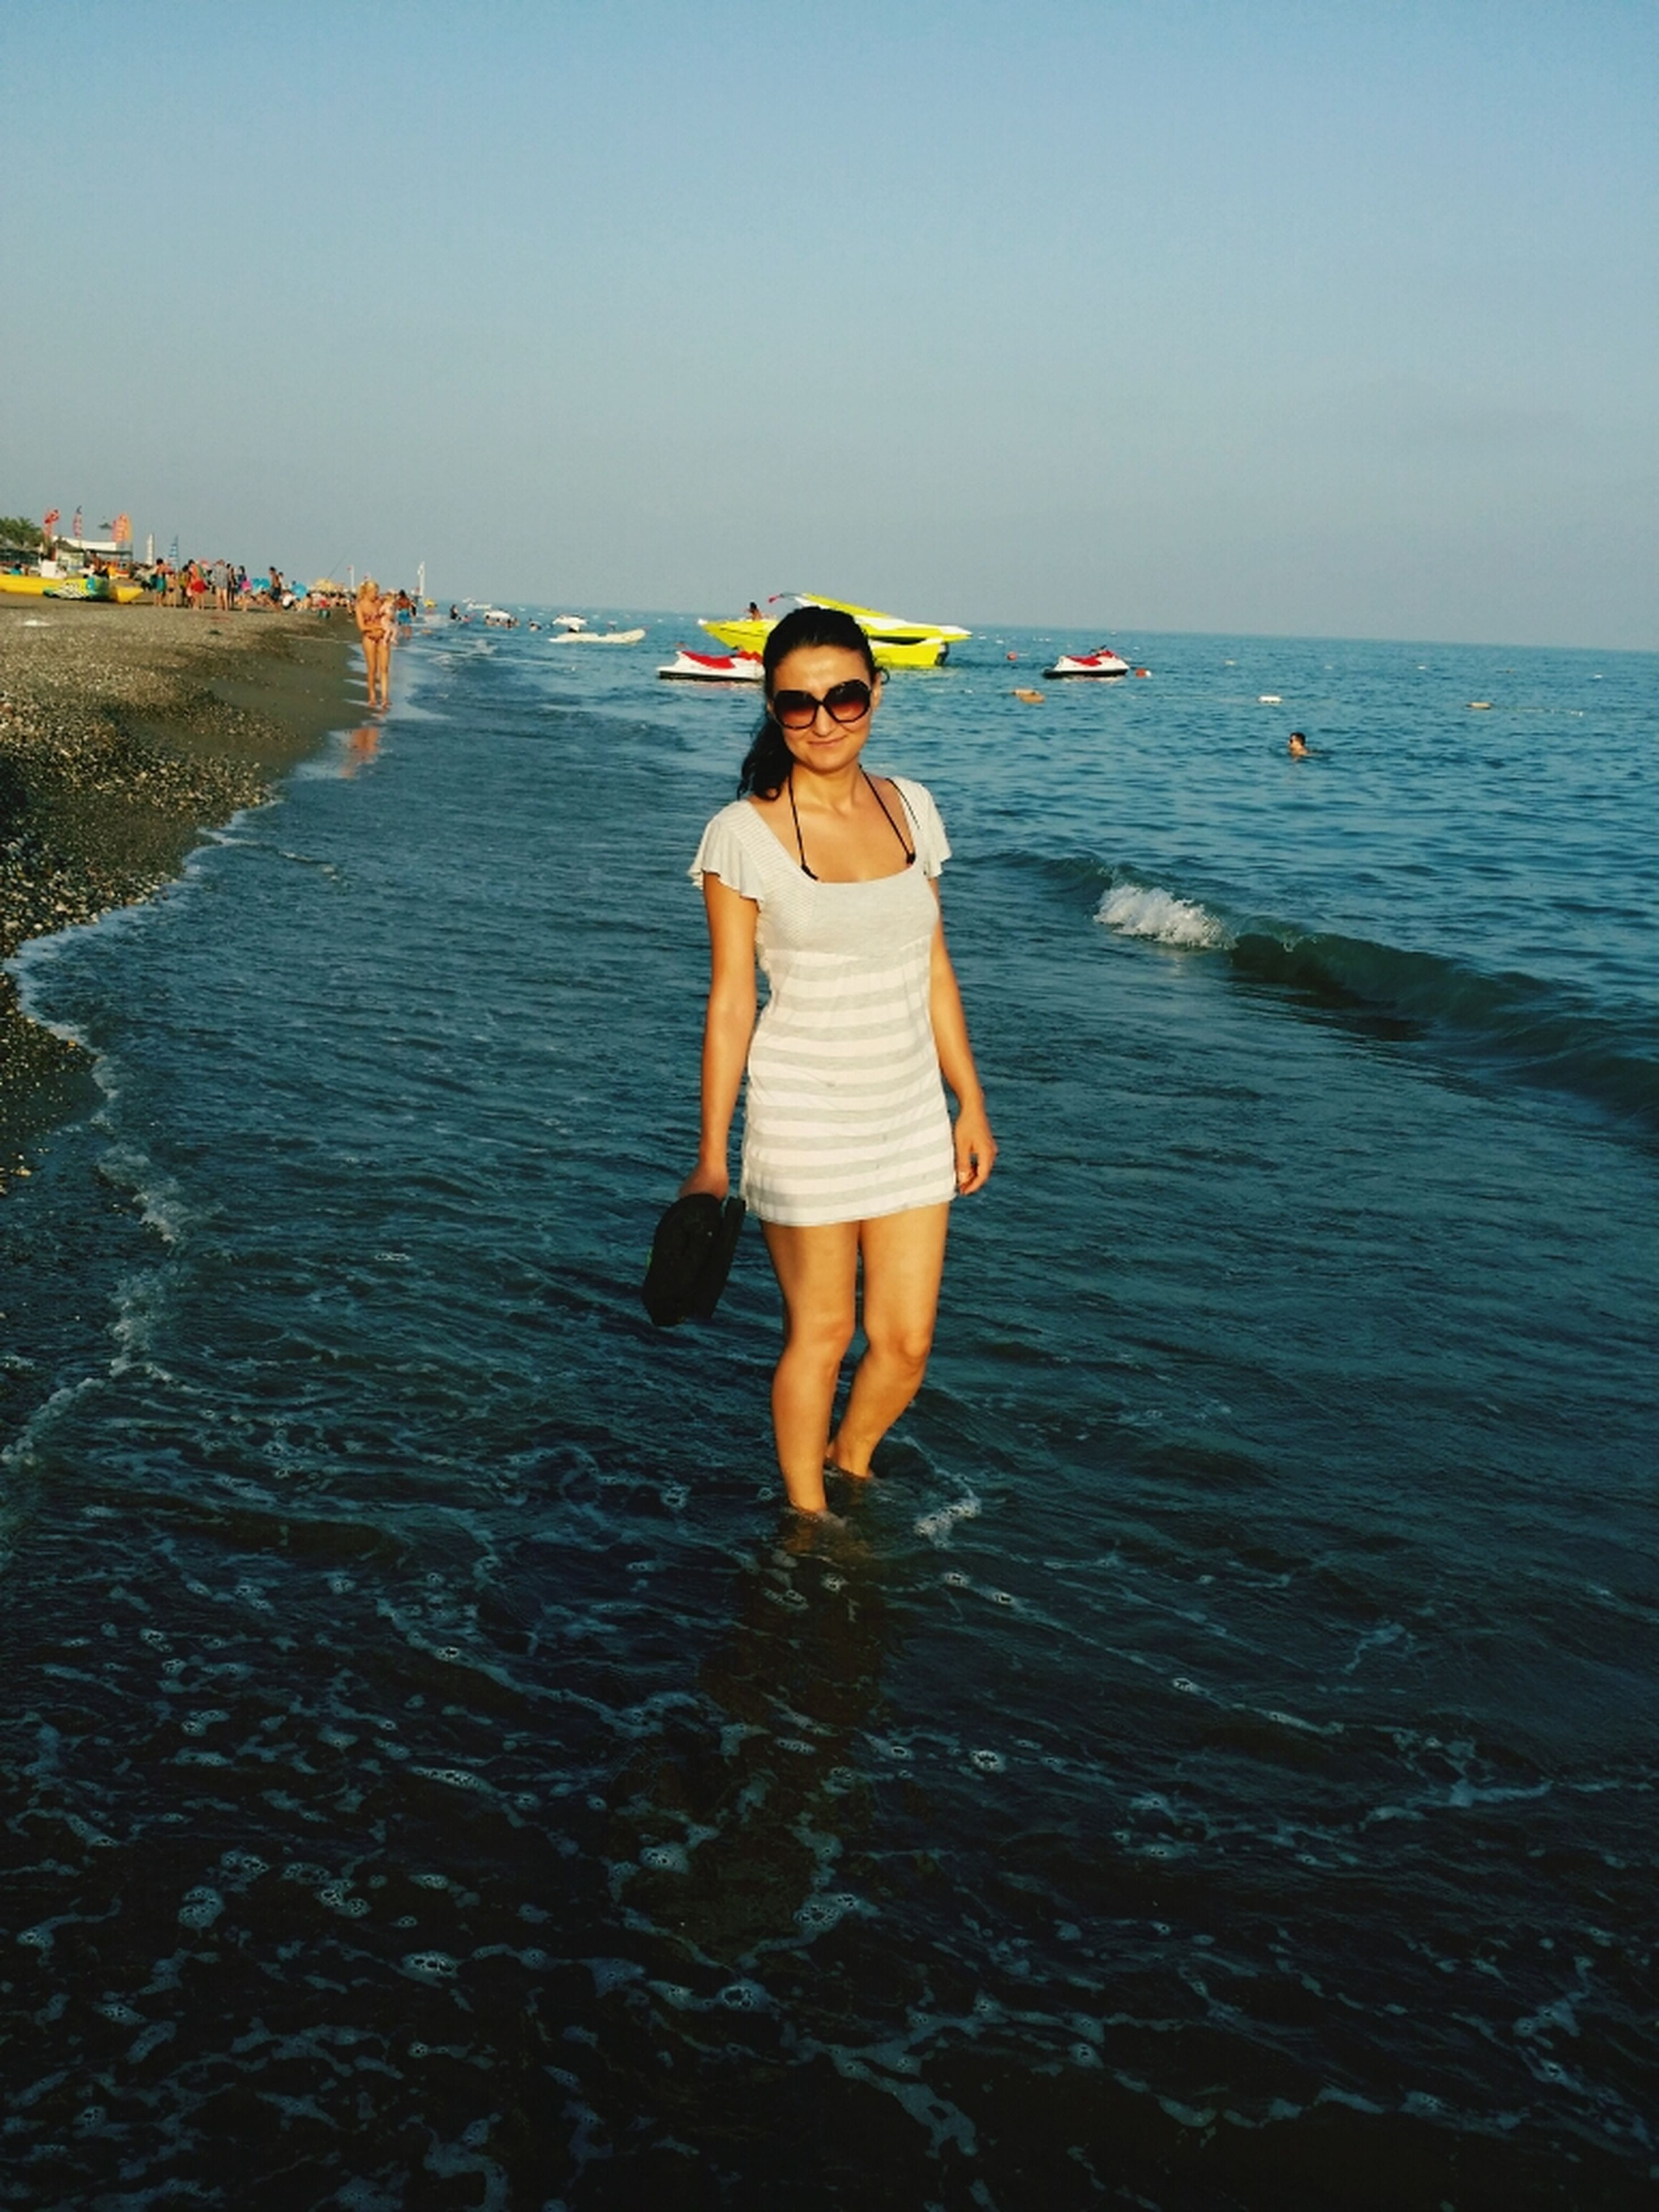 water, full length, sea, leisure activity, lifestyles, casual clothing, beach, clear sky, standing, rear view, horizon over water, childhood, shore, tranquility, person, copy space, tranquil scene, vacations